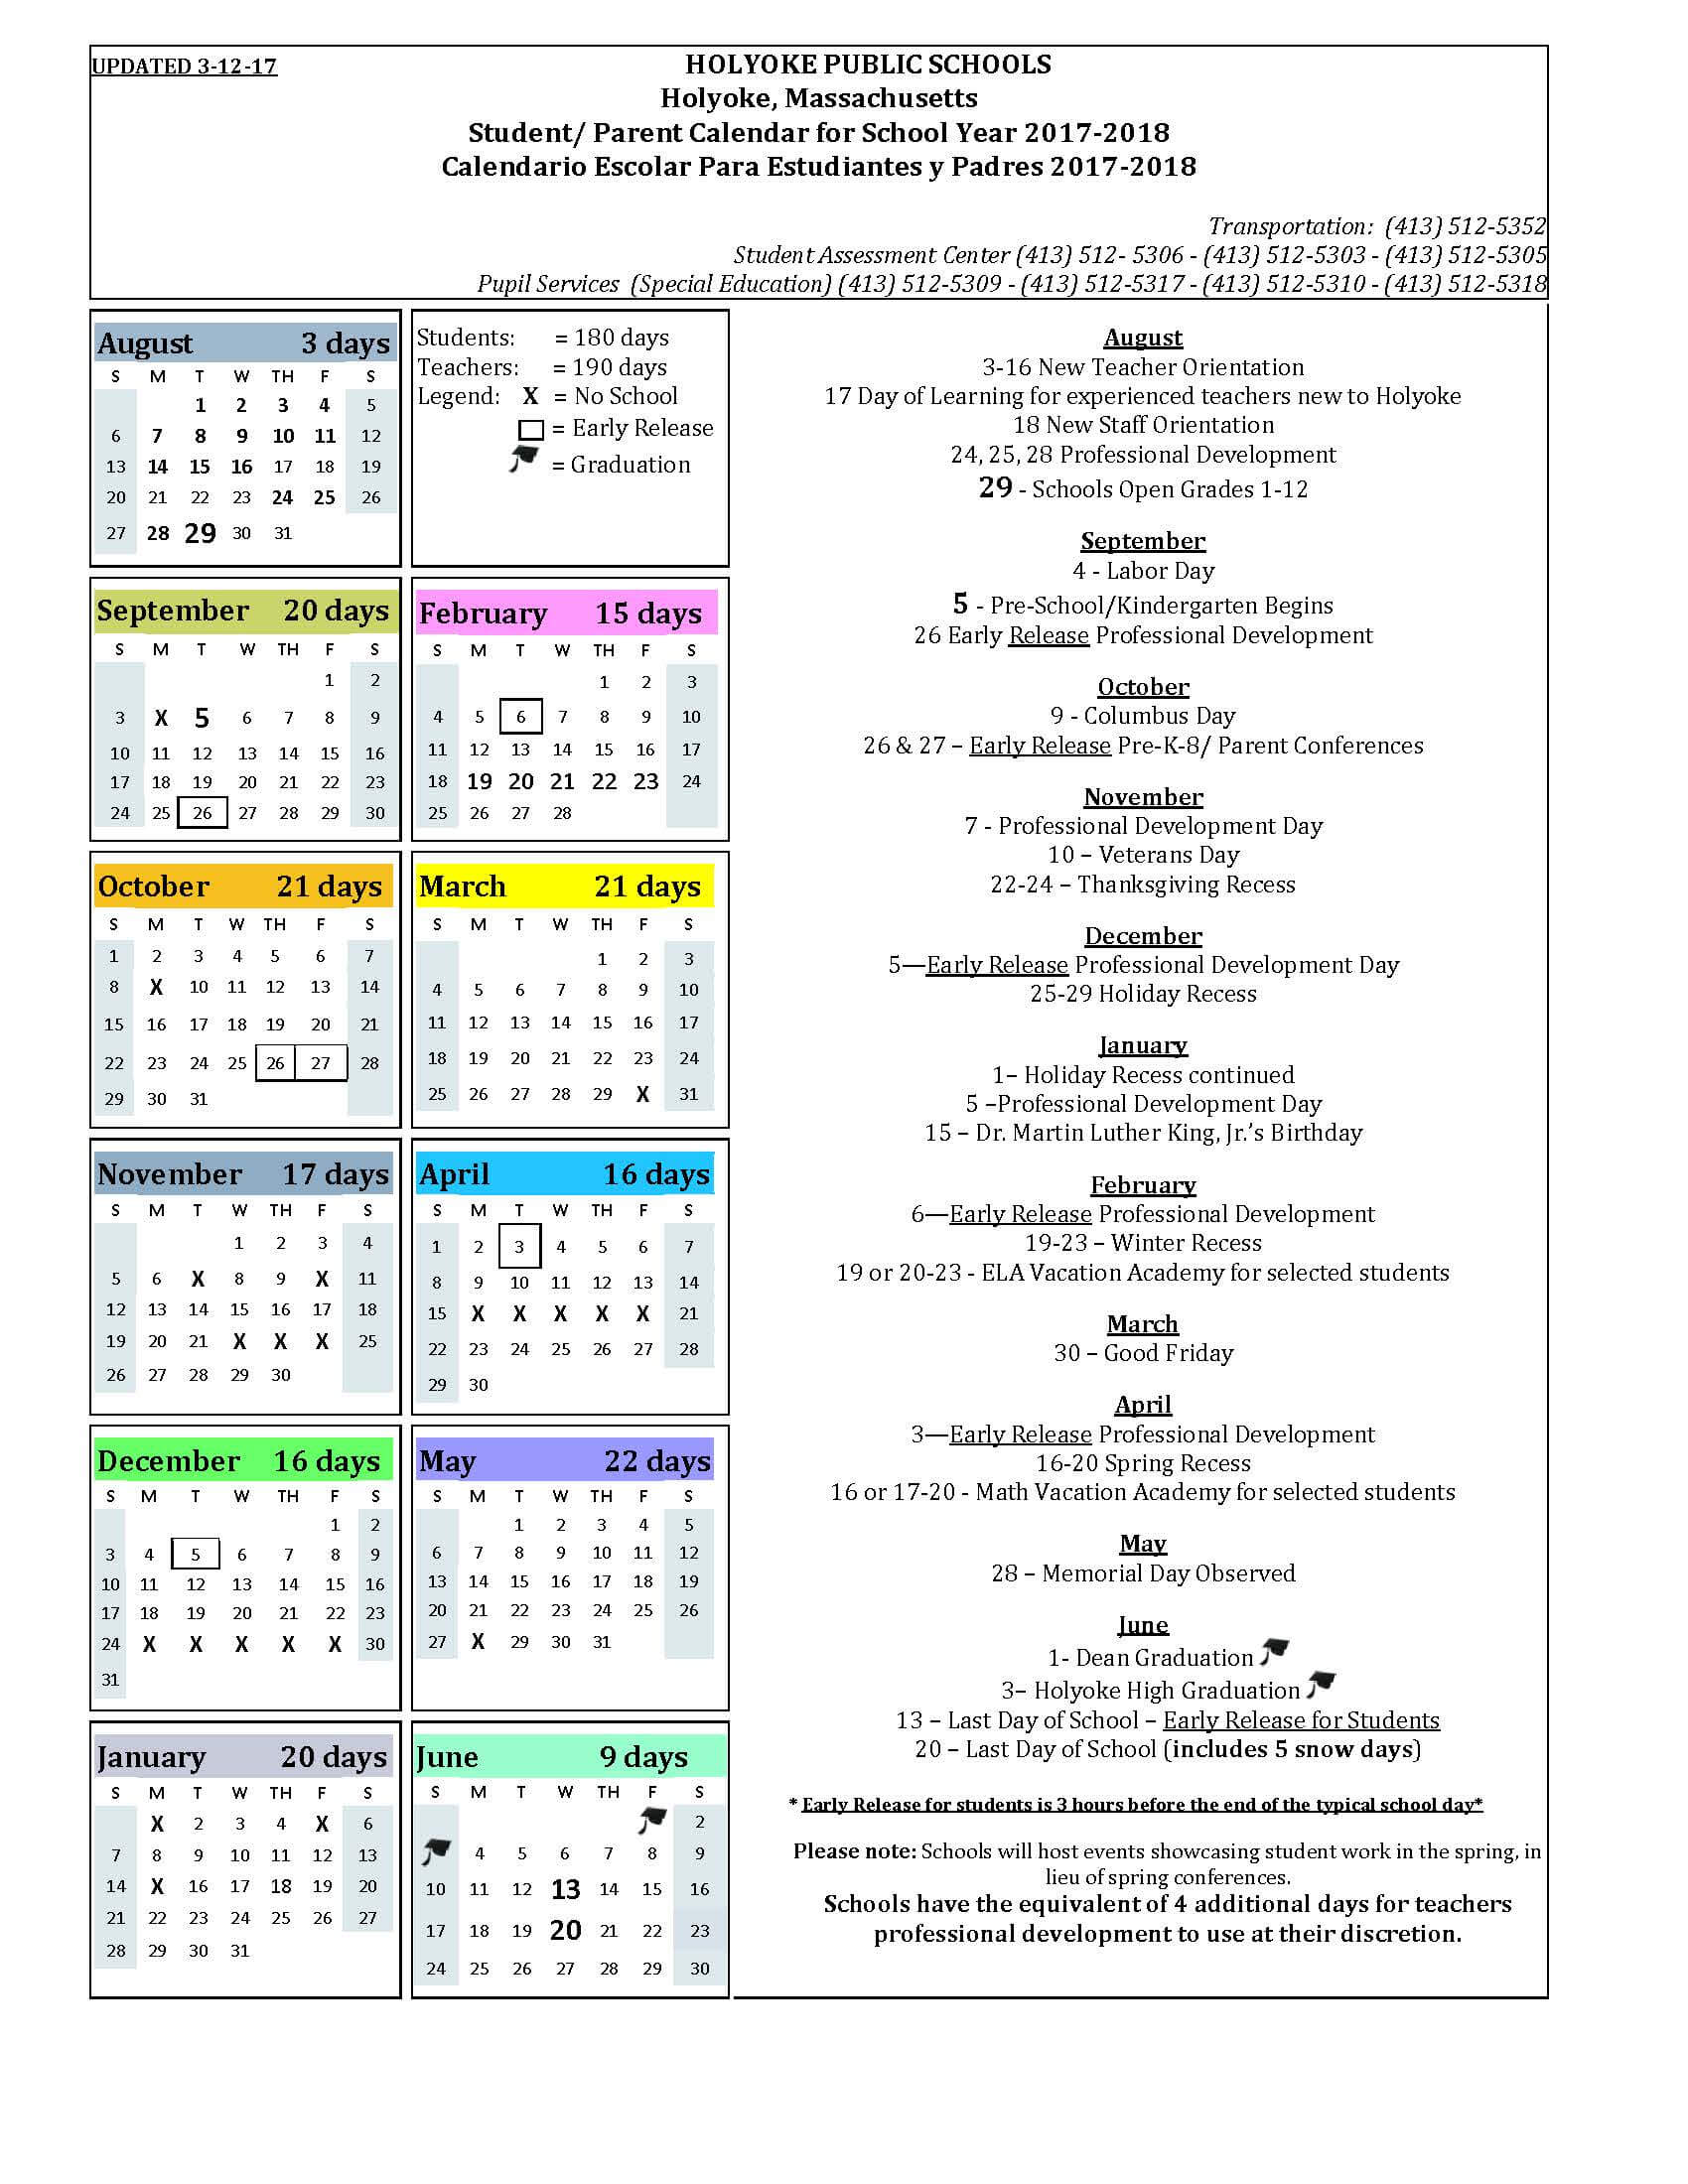 School Calendar SY2017-2018_updated 03-12-17